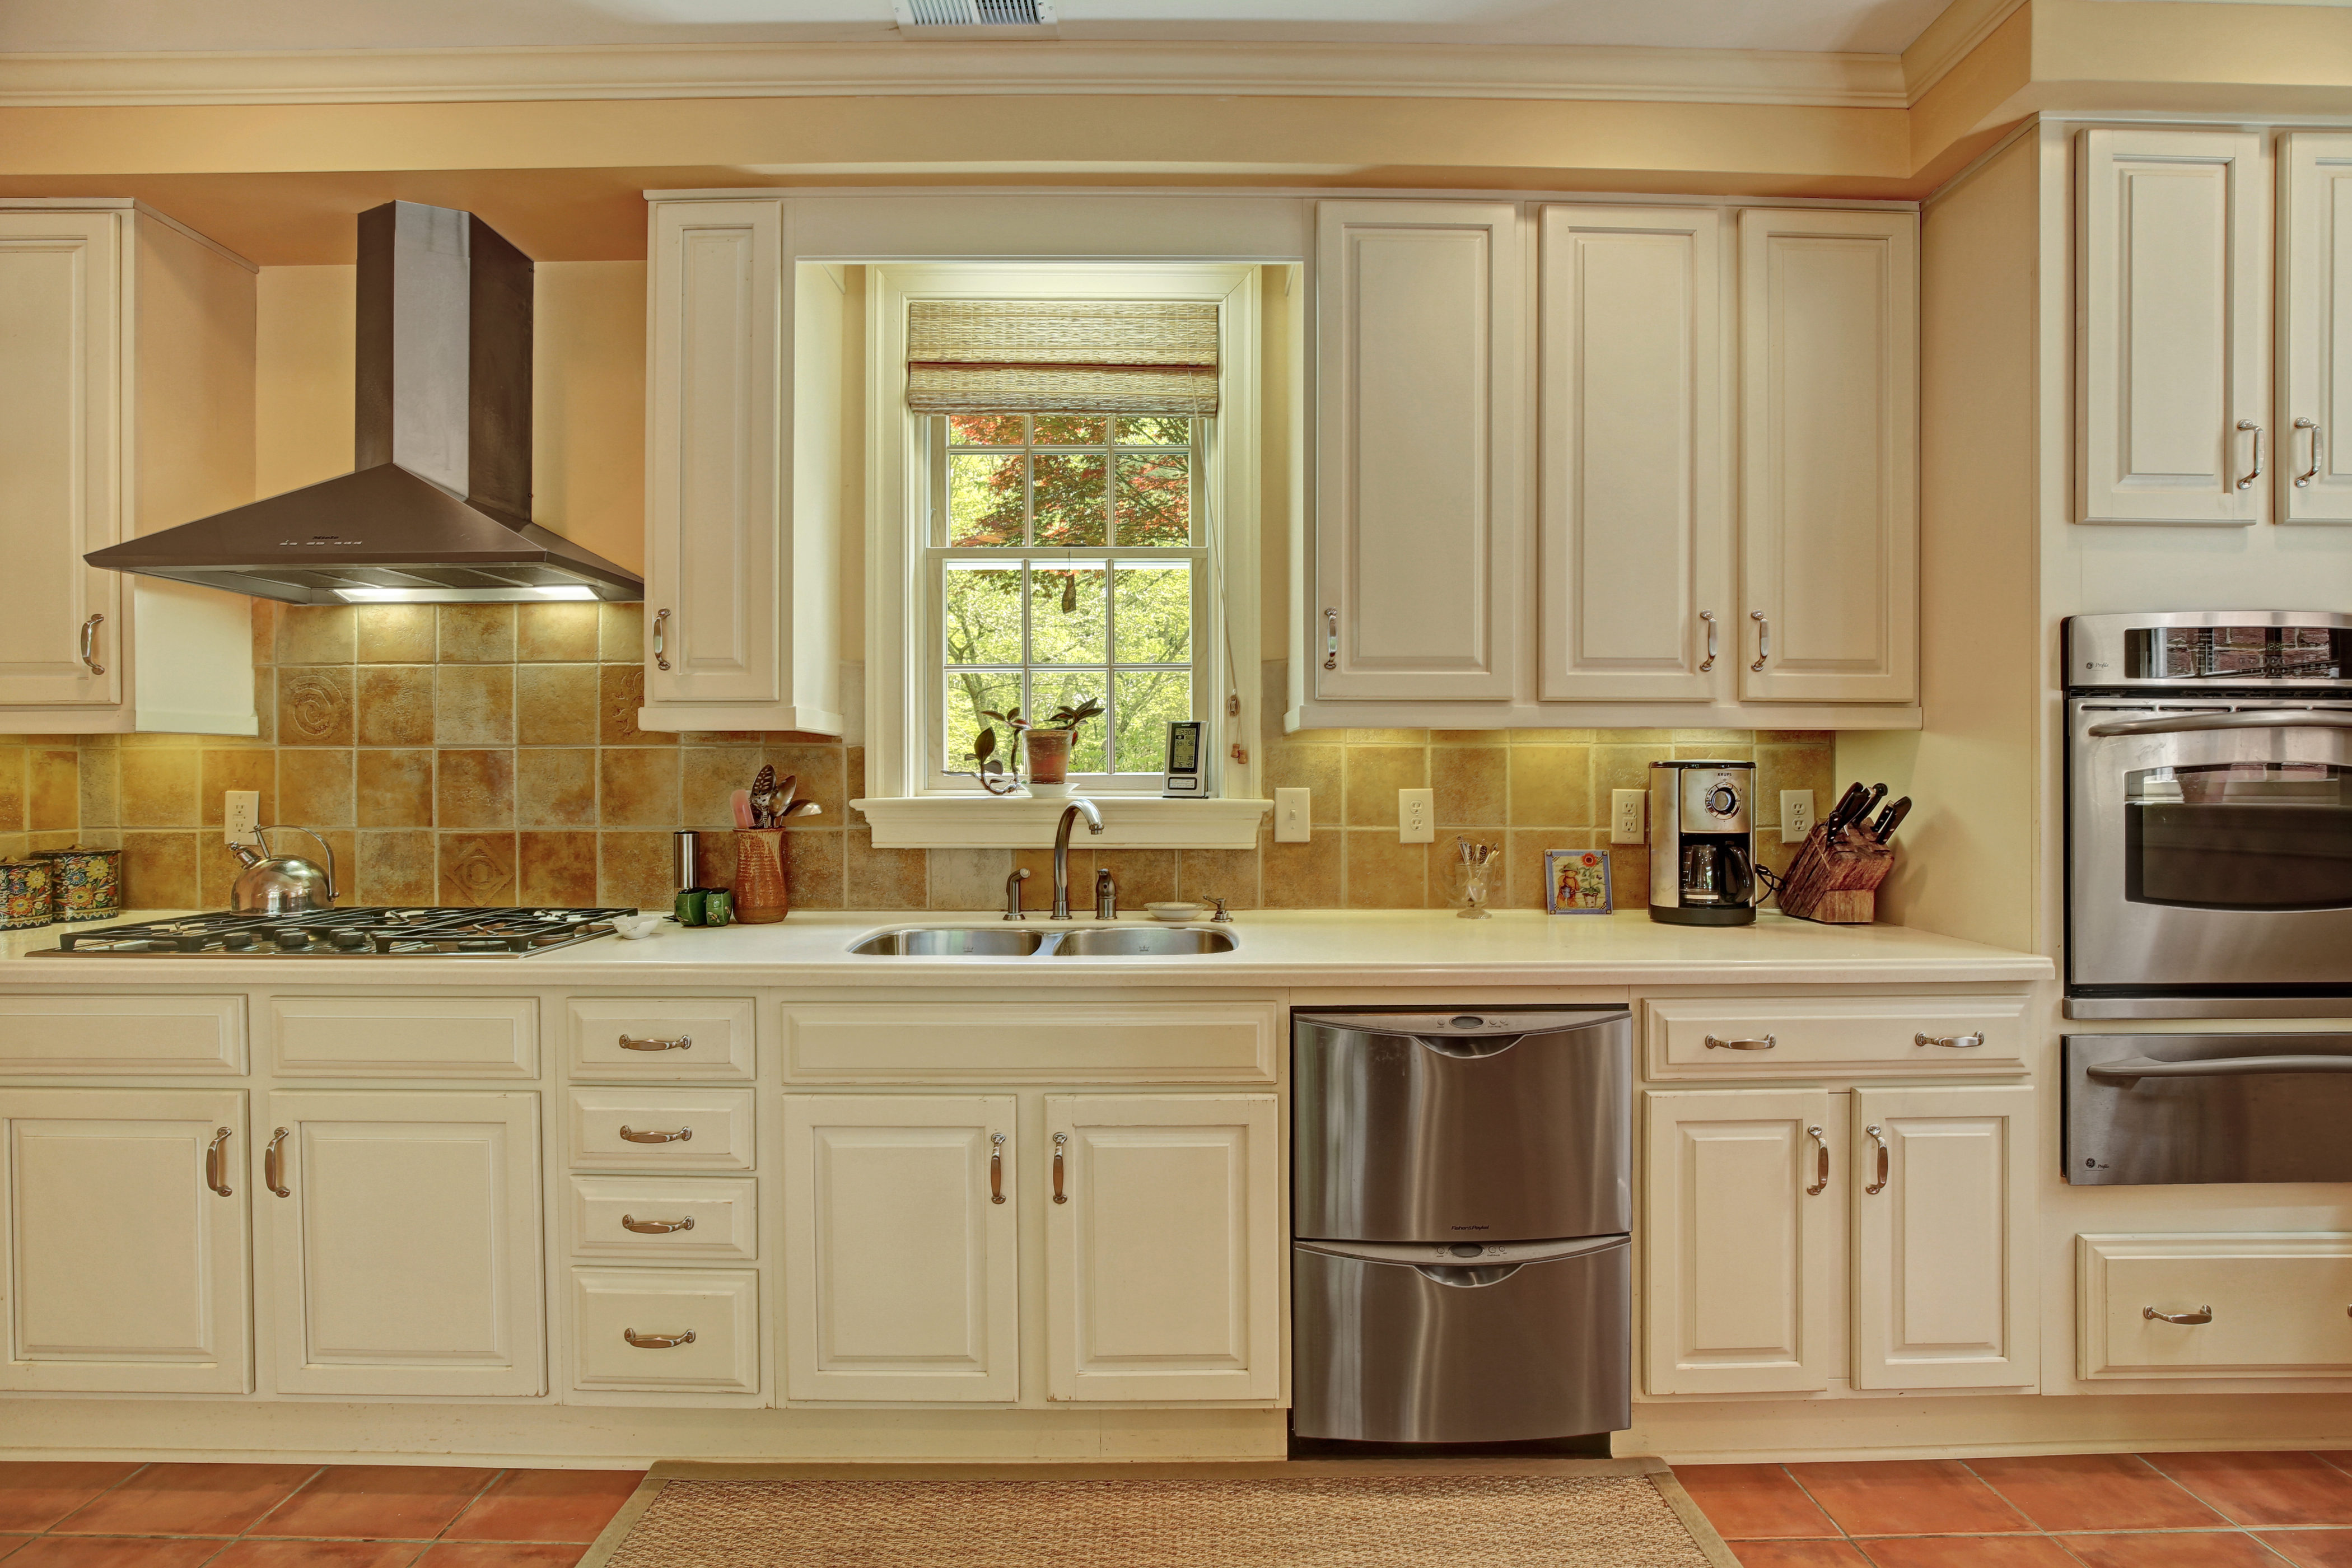 pictures of country kitchens 5636 hopewell burleigh martin homes 4200